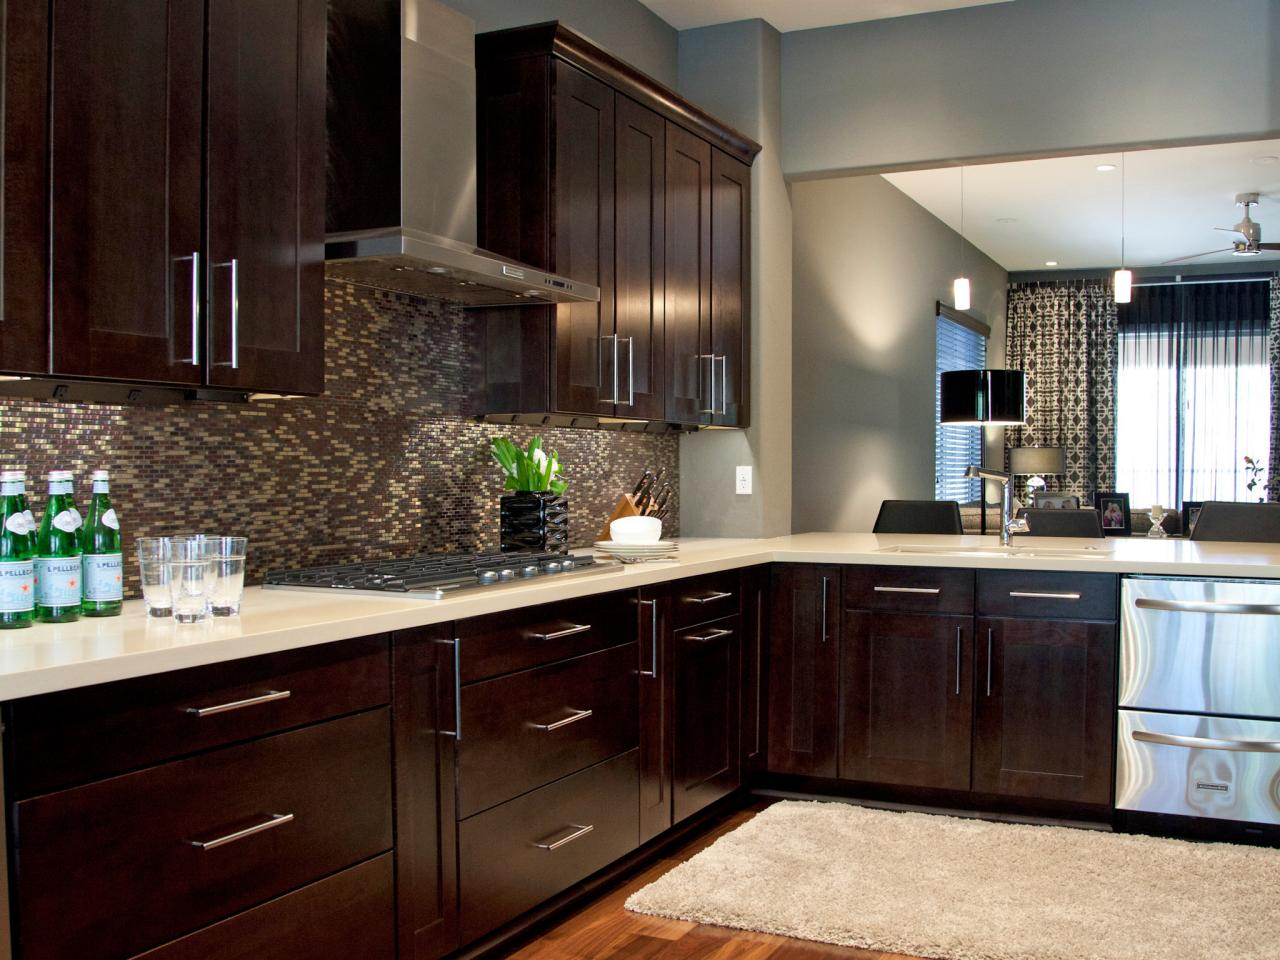 Kitchen Design Black Cabinets espresso kitchen cabinets: pictures, ideas & tips from hgtv | hgtv